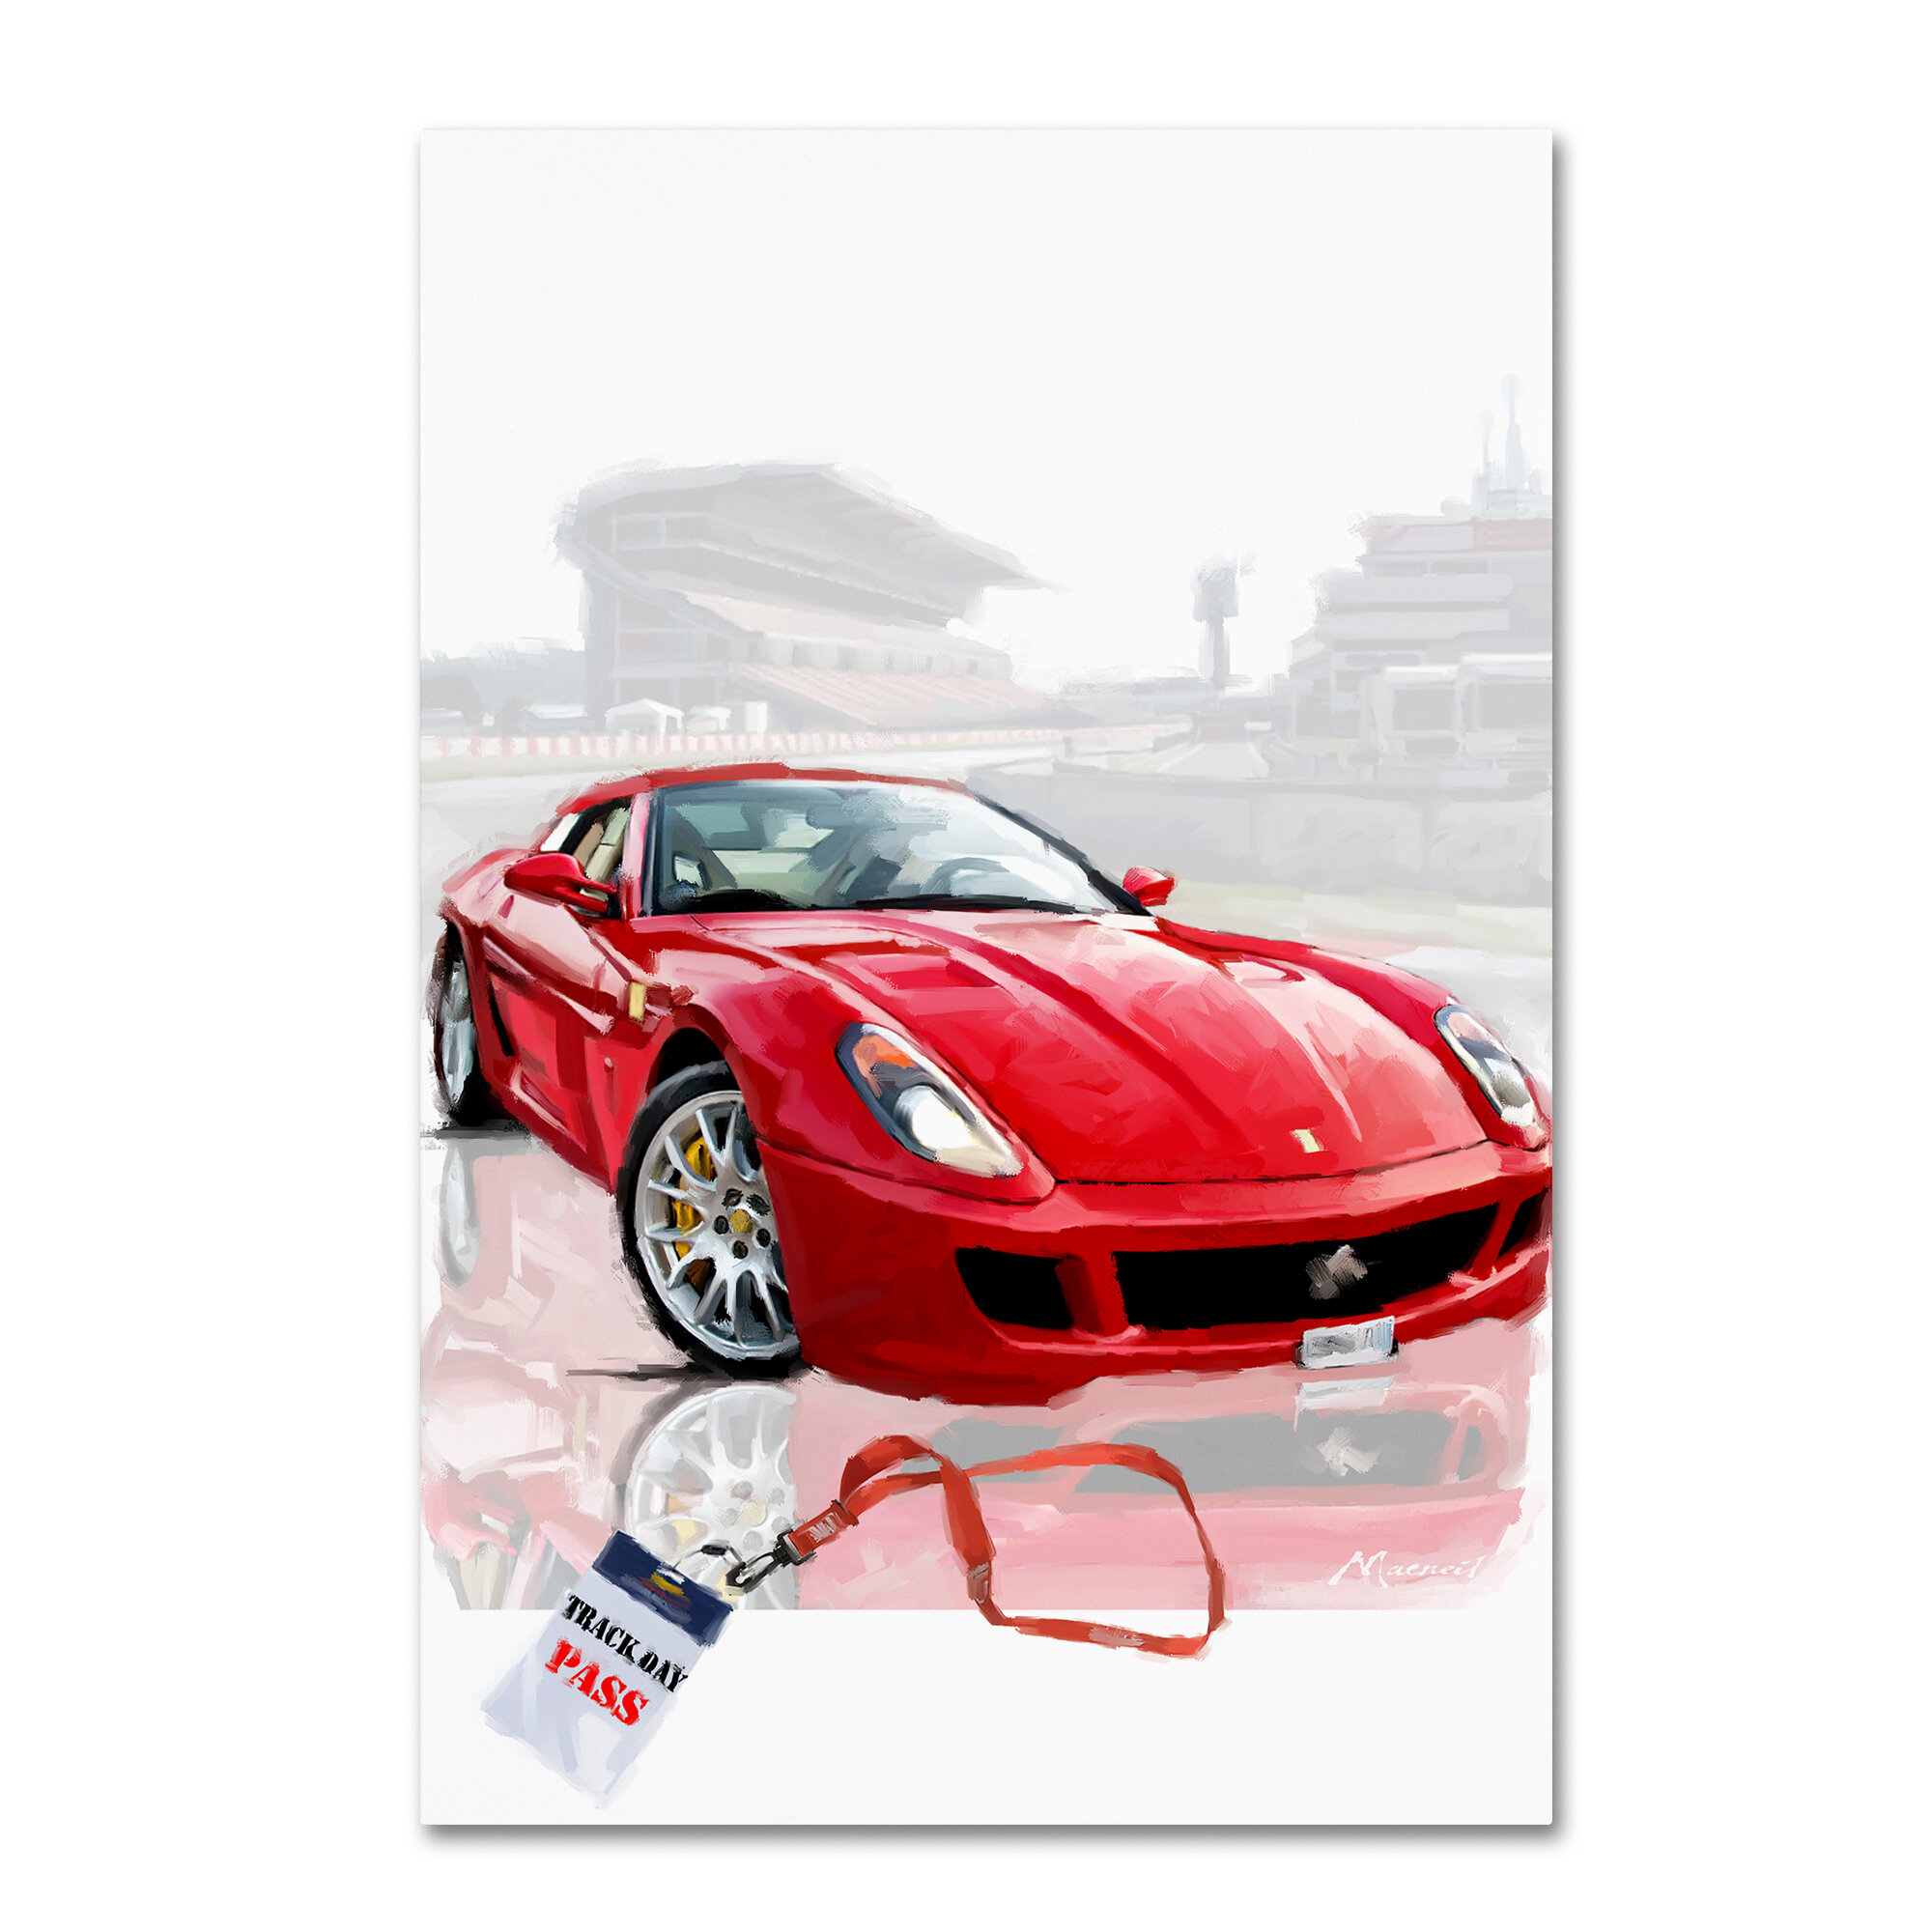 RED FERRARI SPORTS CAR CANVAS PICTURE PRINT WALL ART HOME DECOR FREE DELIVERY